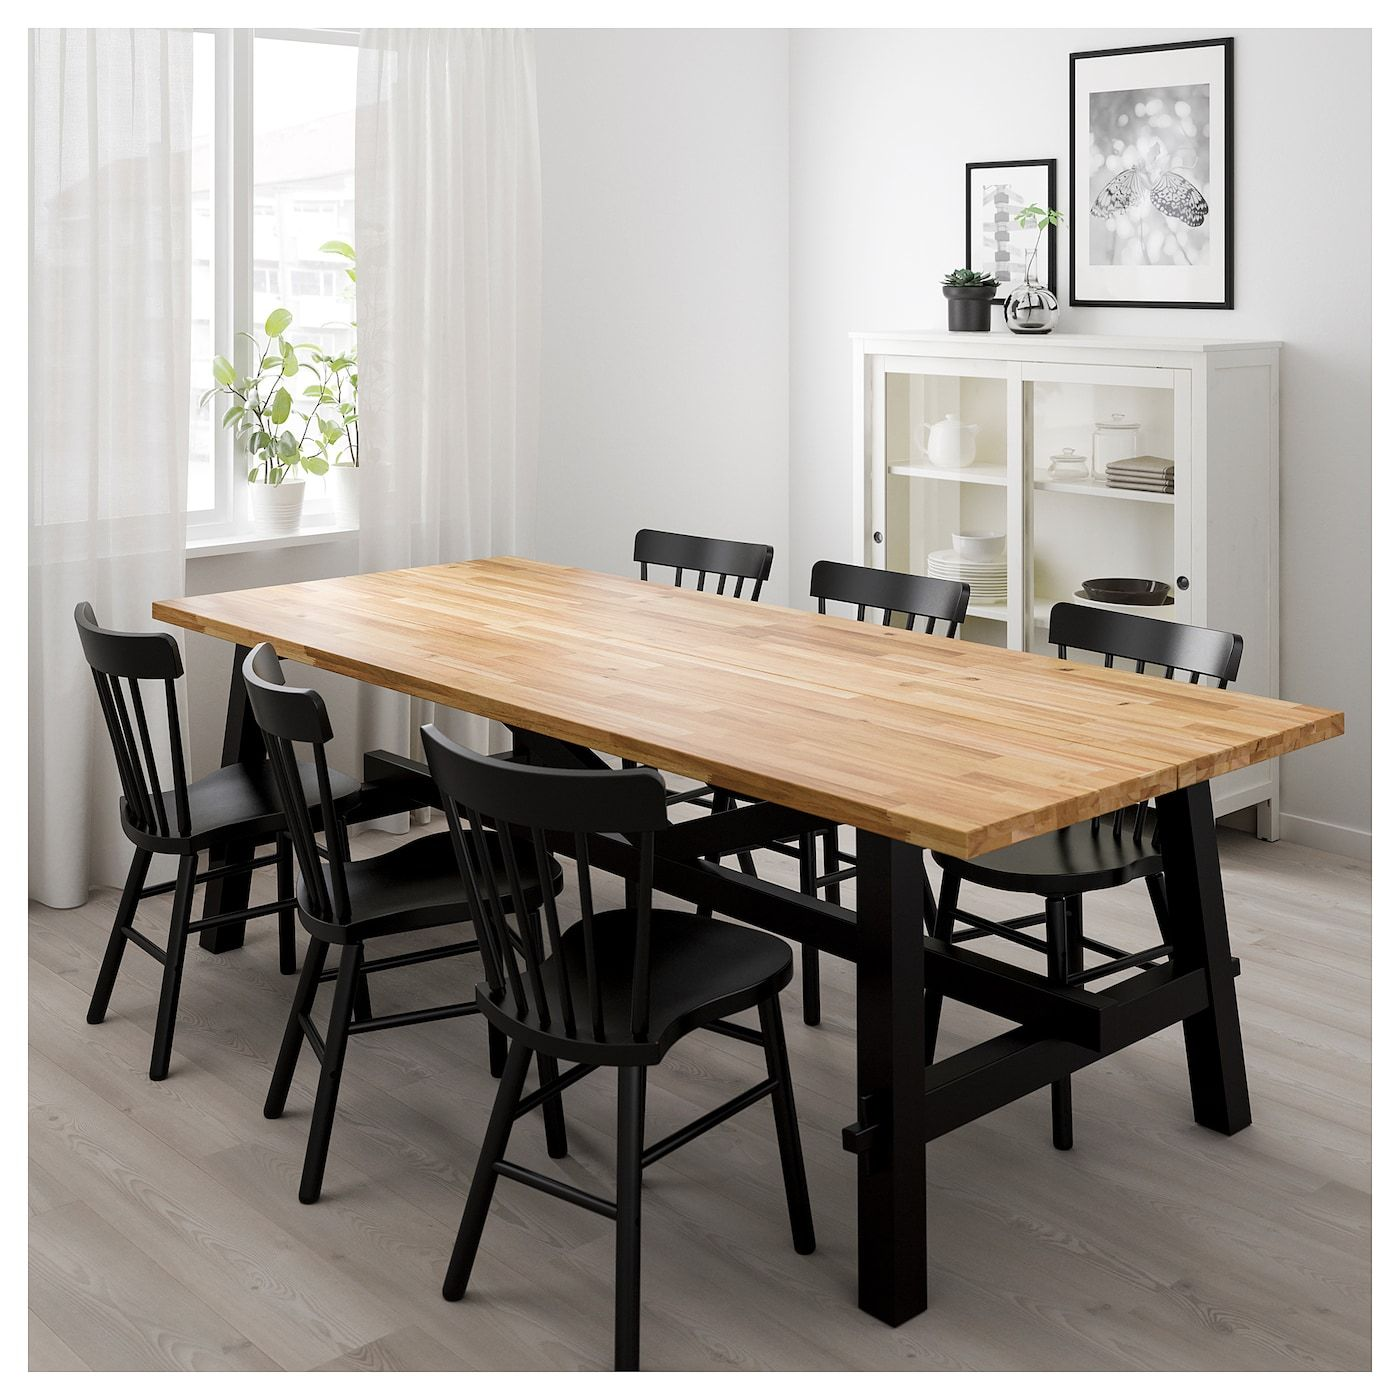 Skogsta Norraryd Table And 6 Chairs Acacia Black 92 1 2x39 3